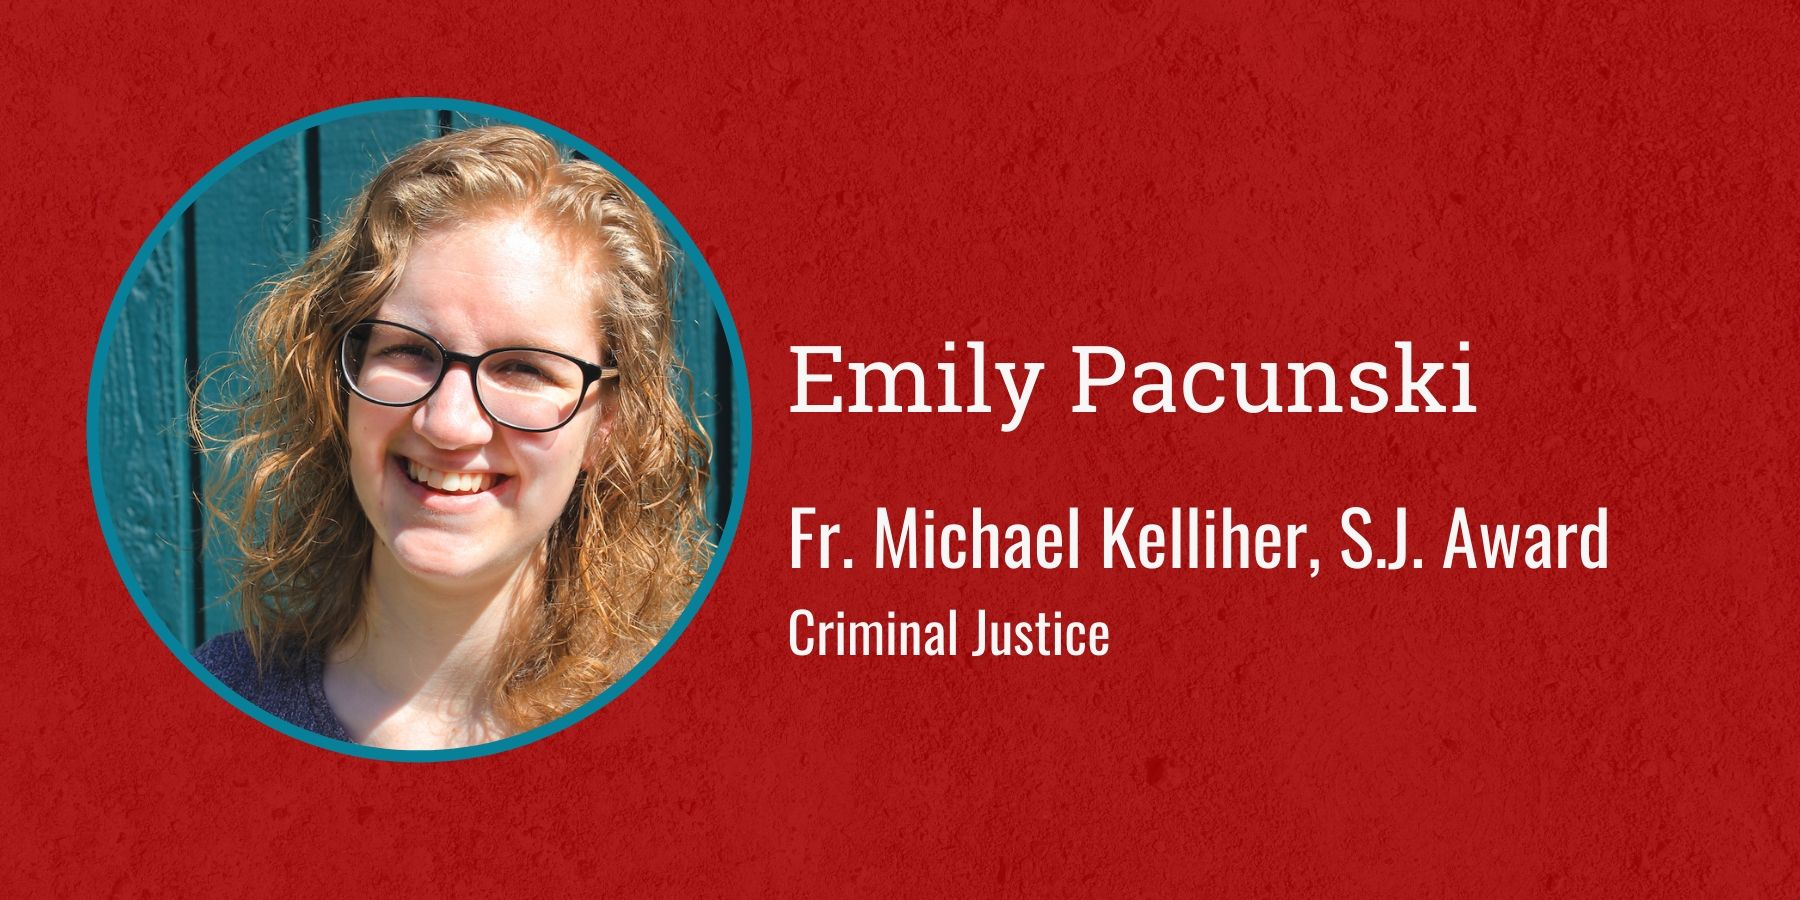 Image of Emily Pacunski and text Fr. Michael Kelliher, S.J. Award, Criminal Justice